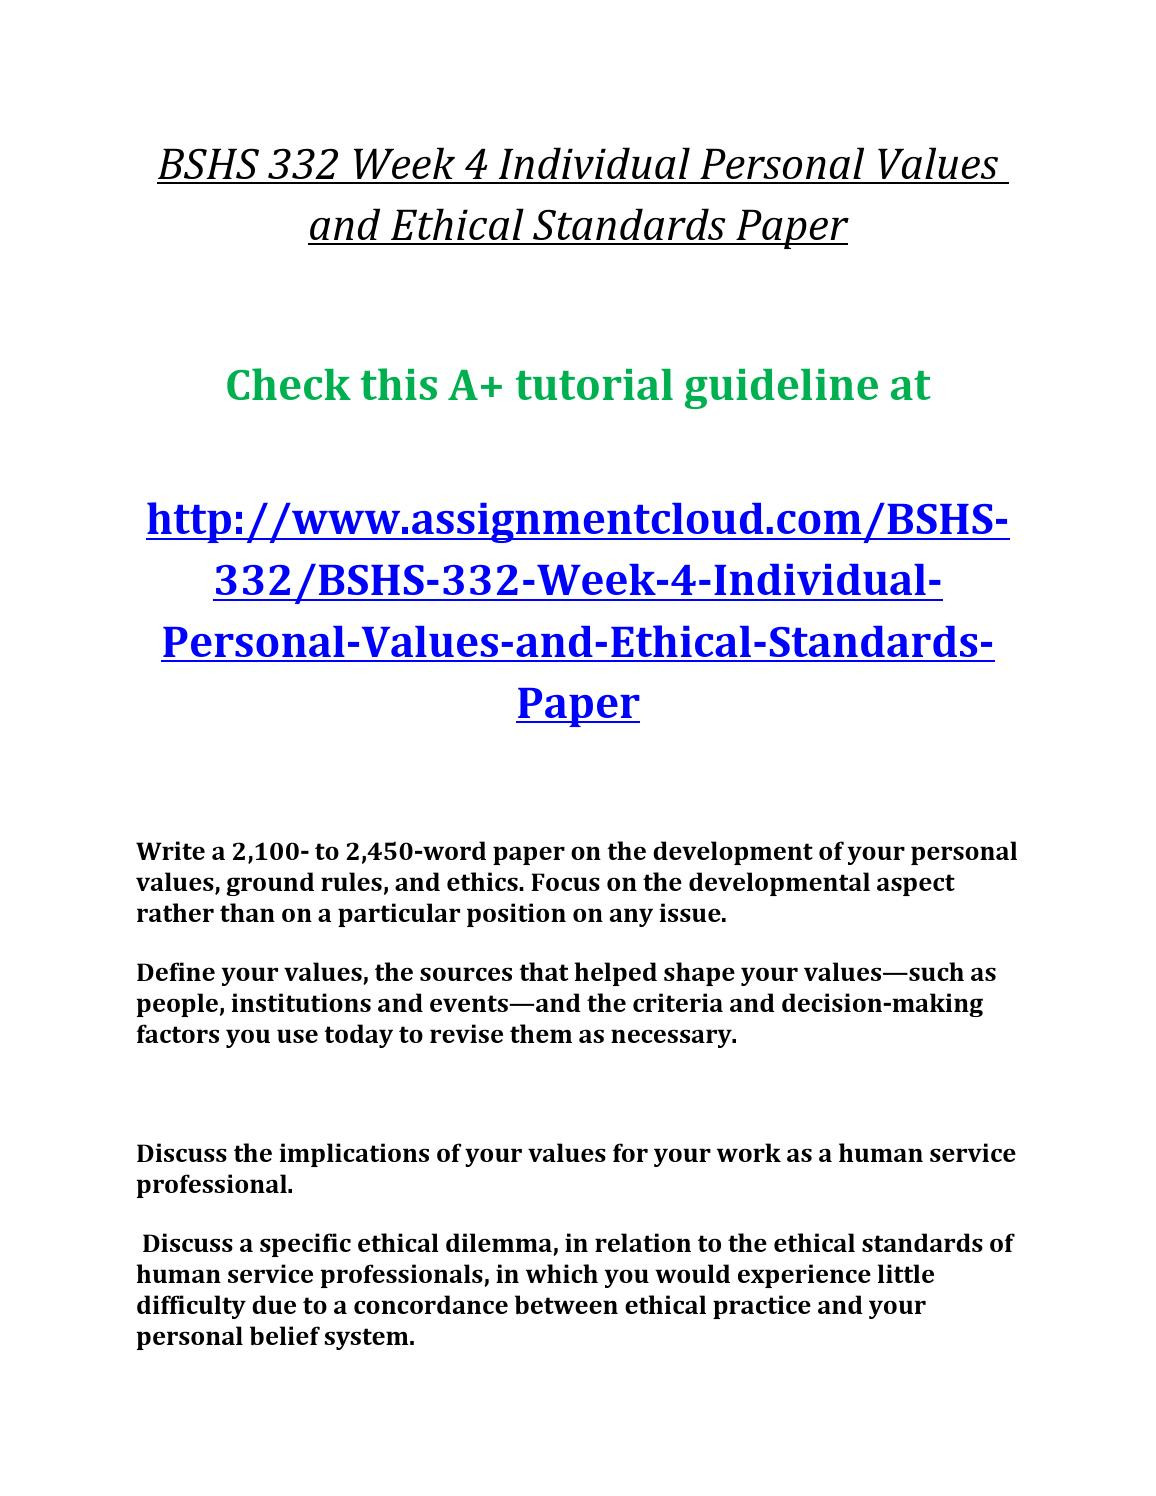 BSHS 332 Week 4 Individual Assignment Personal Values and Ethical Standards Paper